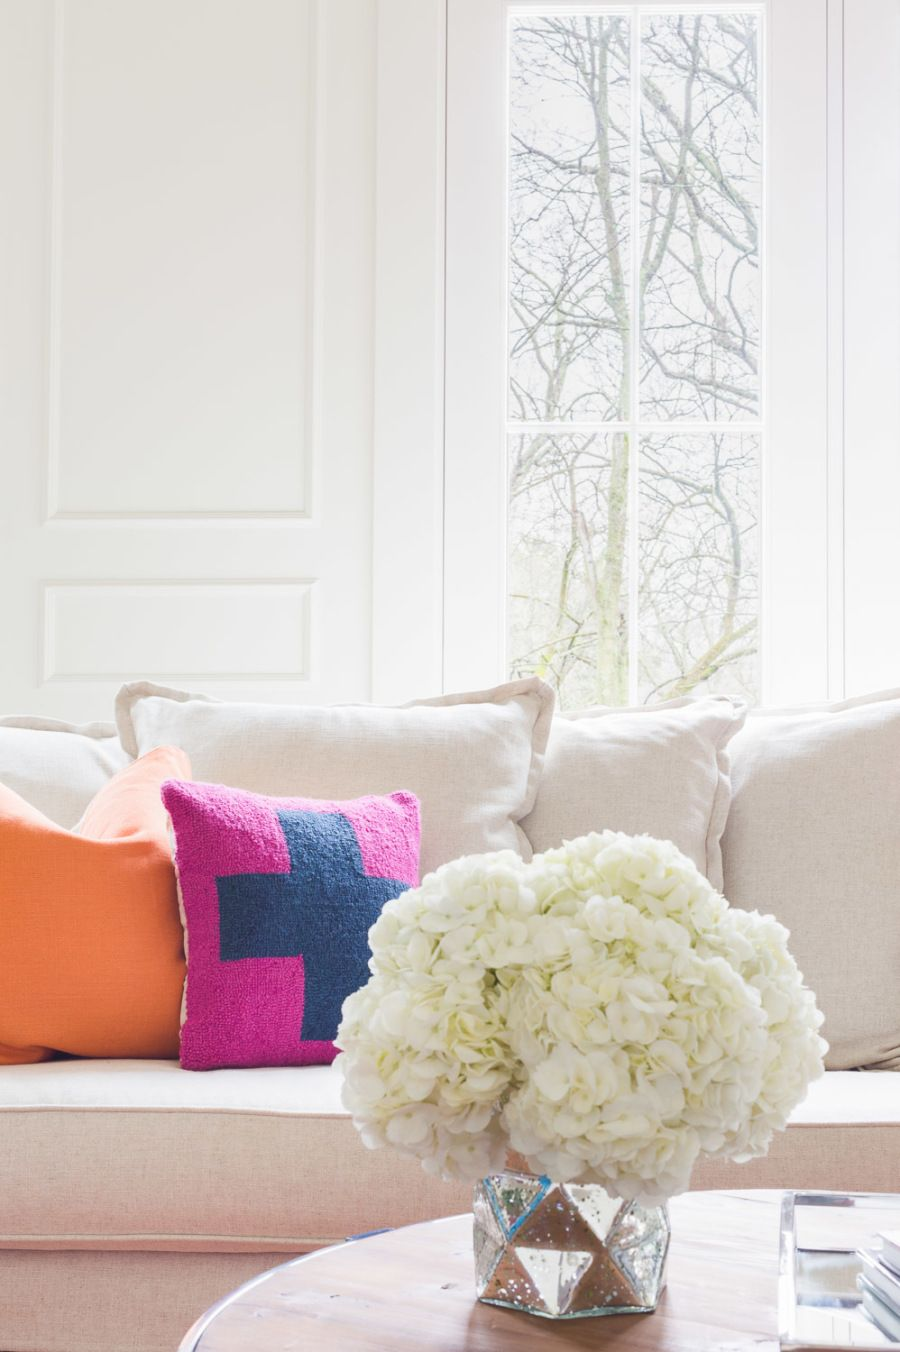 10 Bright Tips for Adding Color to Your Home | Nordic ...